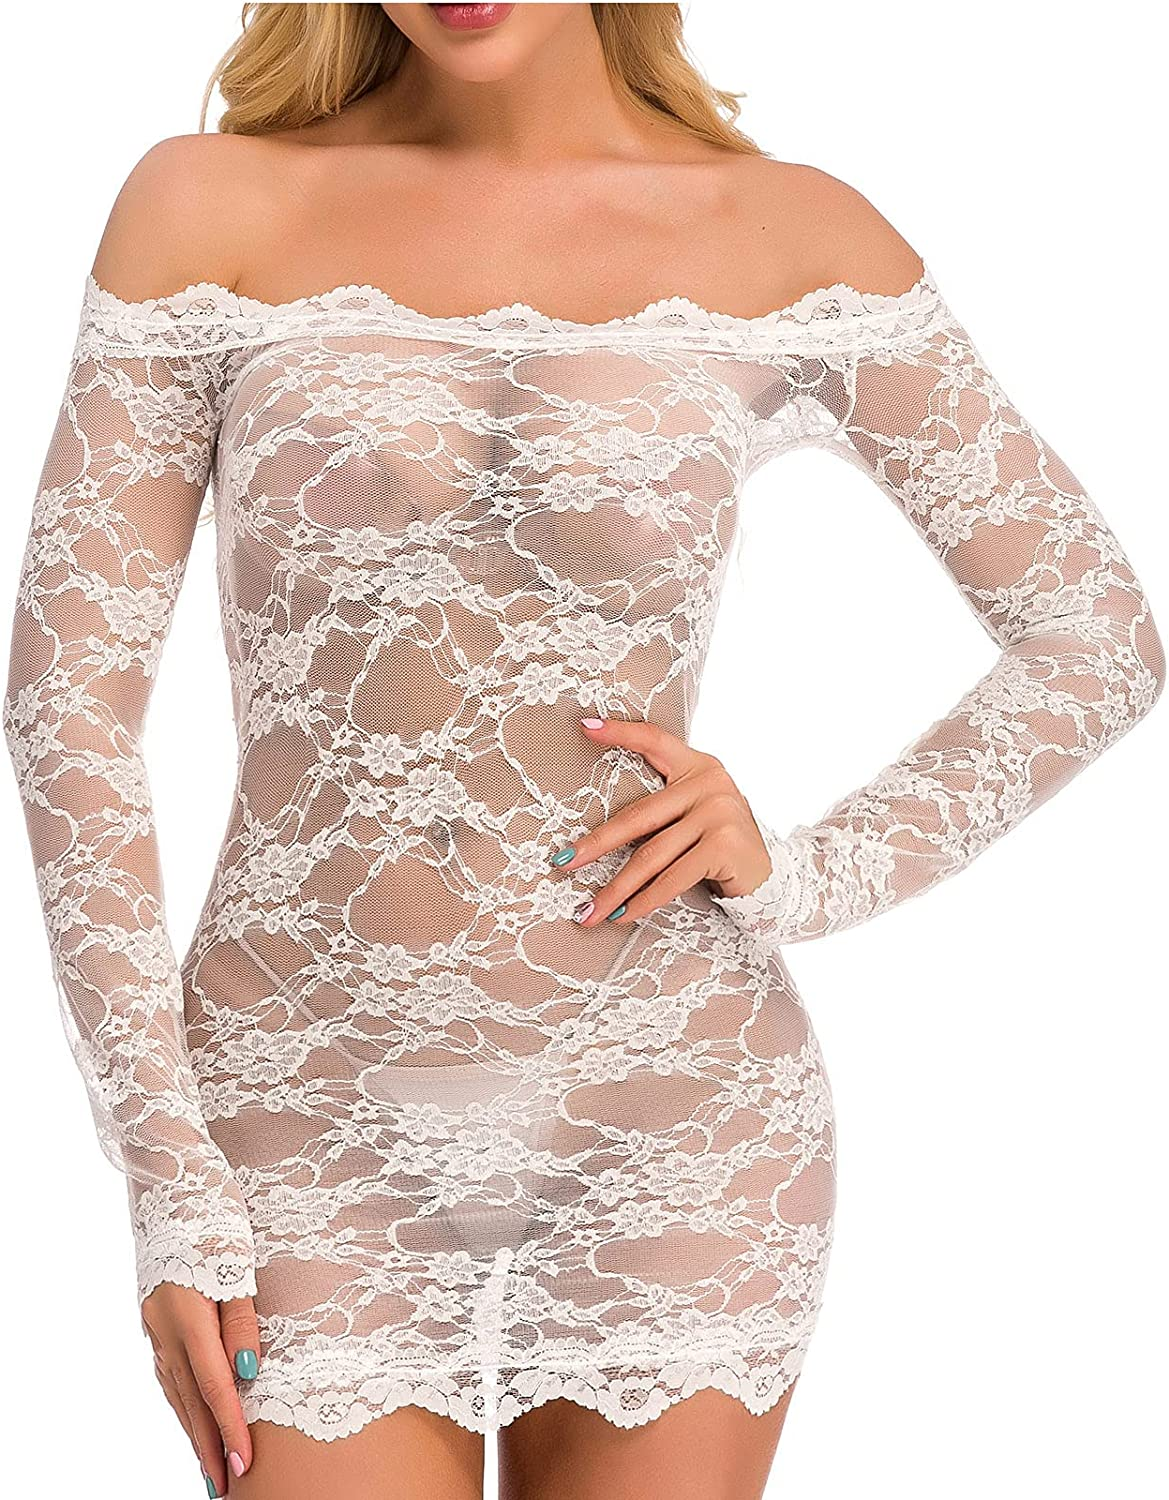 Womens Sexy Lingerie Chemise Lace Babydoll See Through Bodysuit Lingerie Off The Shoulder Long-Sleeved Pajamas